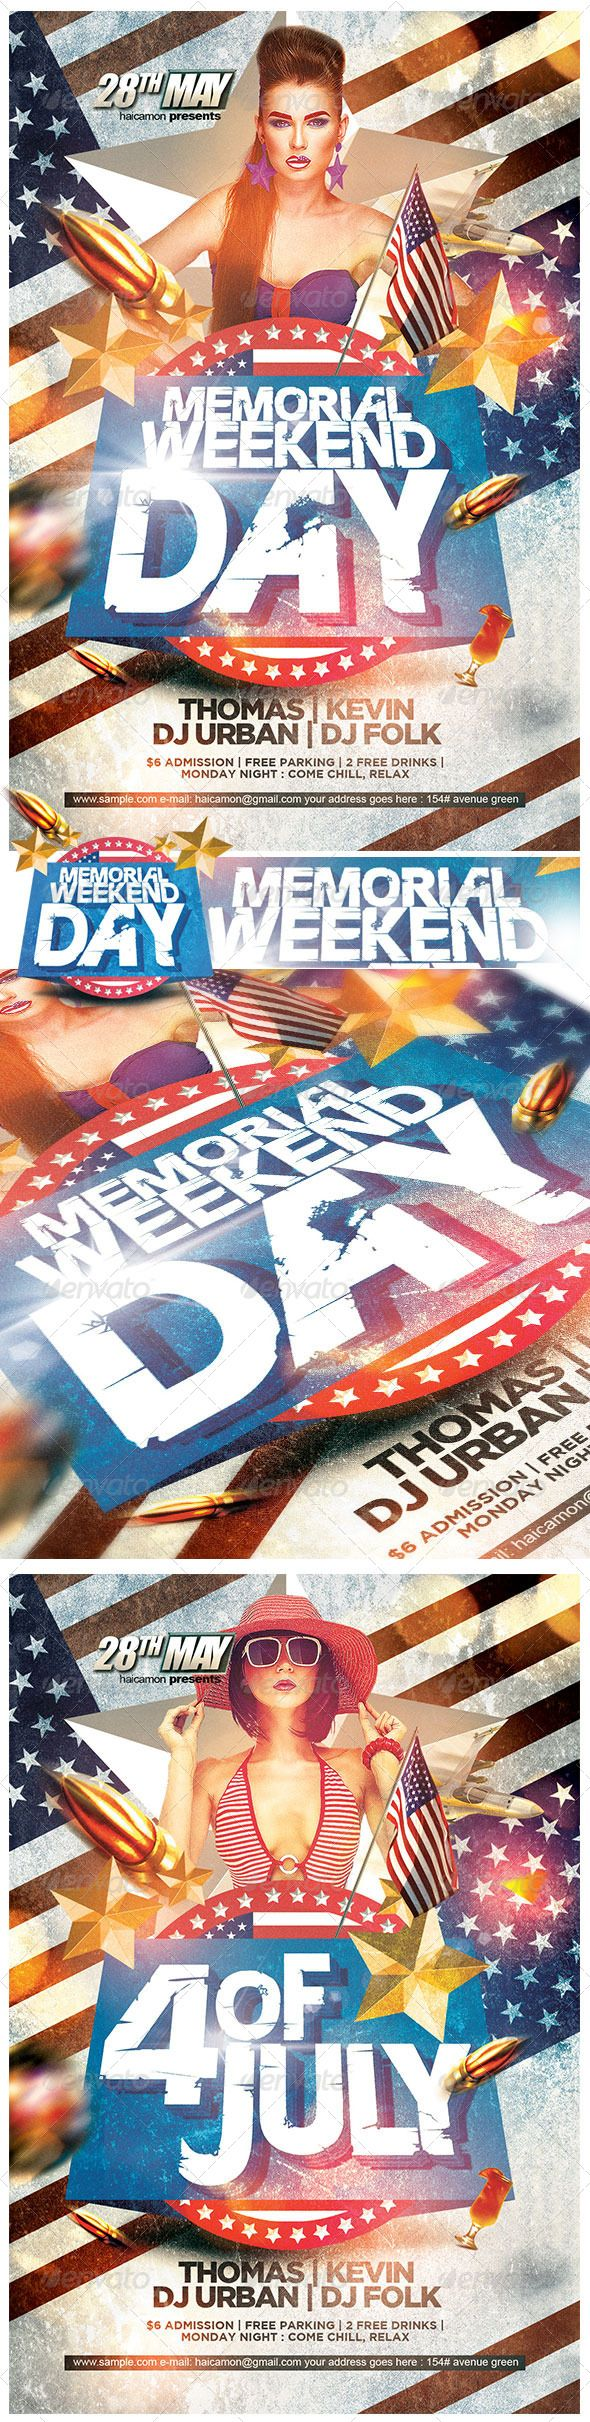 Memorial Day Weekend Party ...  4th july flyer, 4th of july, Memorial Day Event, Patriot flyer, club flyer, event, flyer, independence day, labor day, memorial day, memorial day flyer, night club, party flyer, patriot, weekend flyer